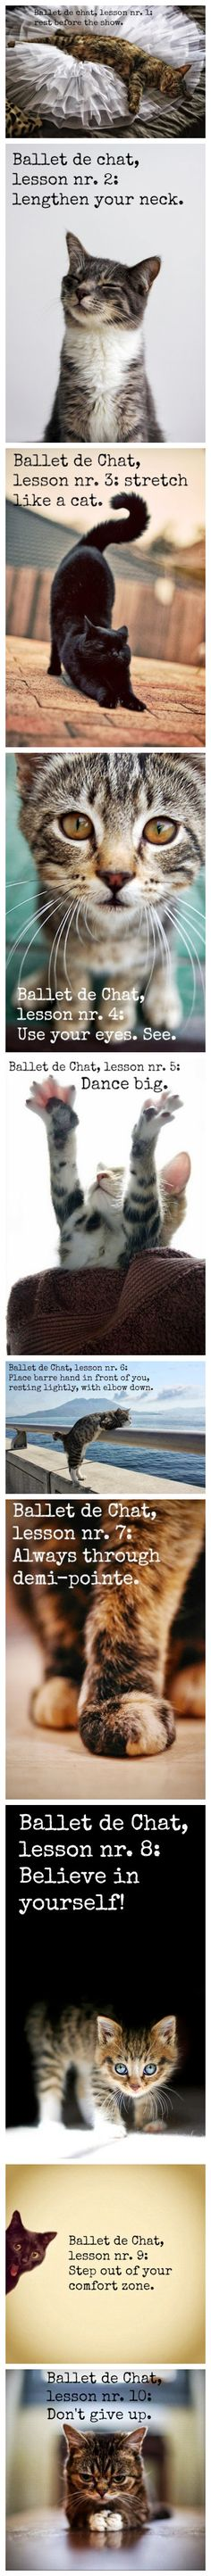 Ballet de Chat. Lessons for students from cute kittens! ♥ Wonderful! www.thewonderfulworldofdance.com